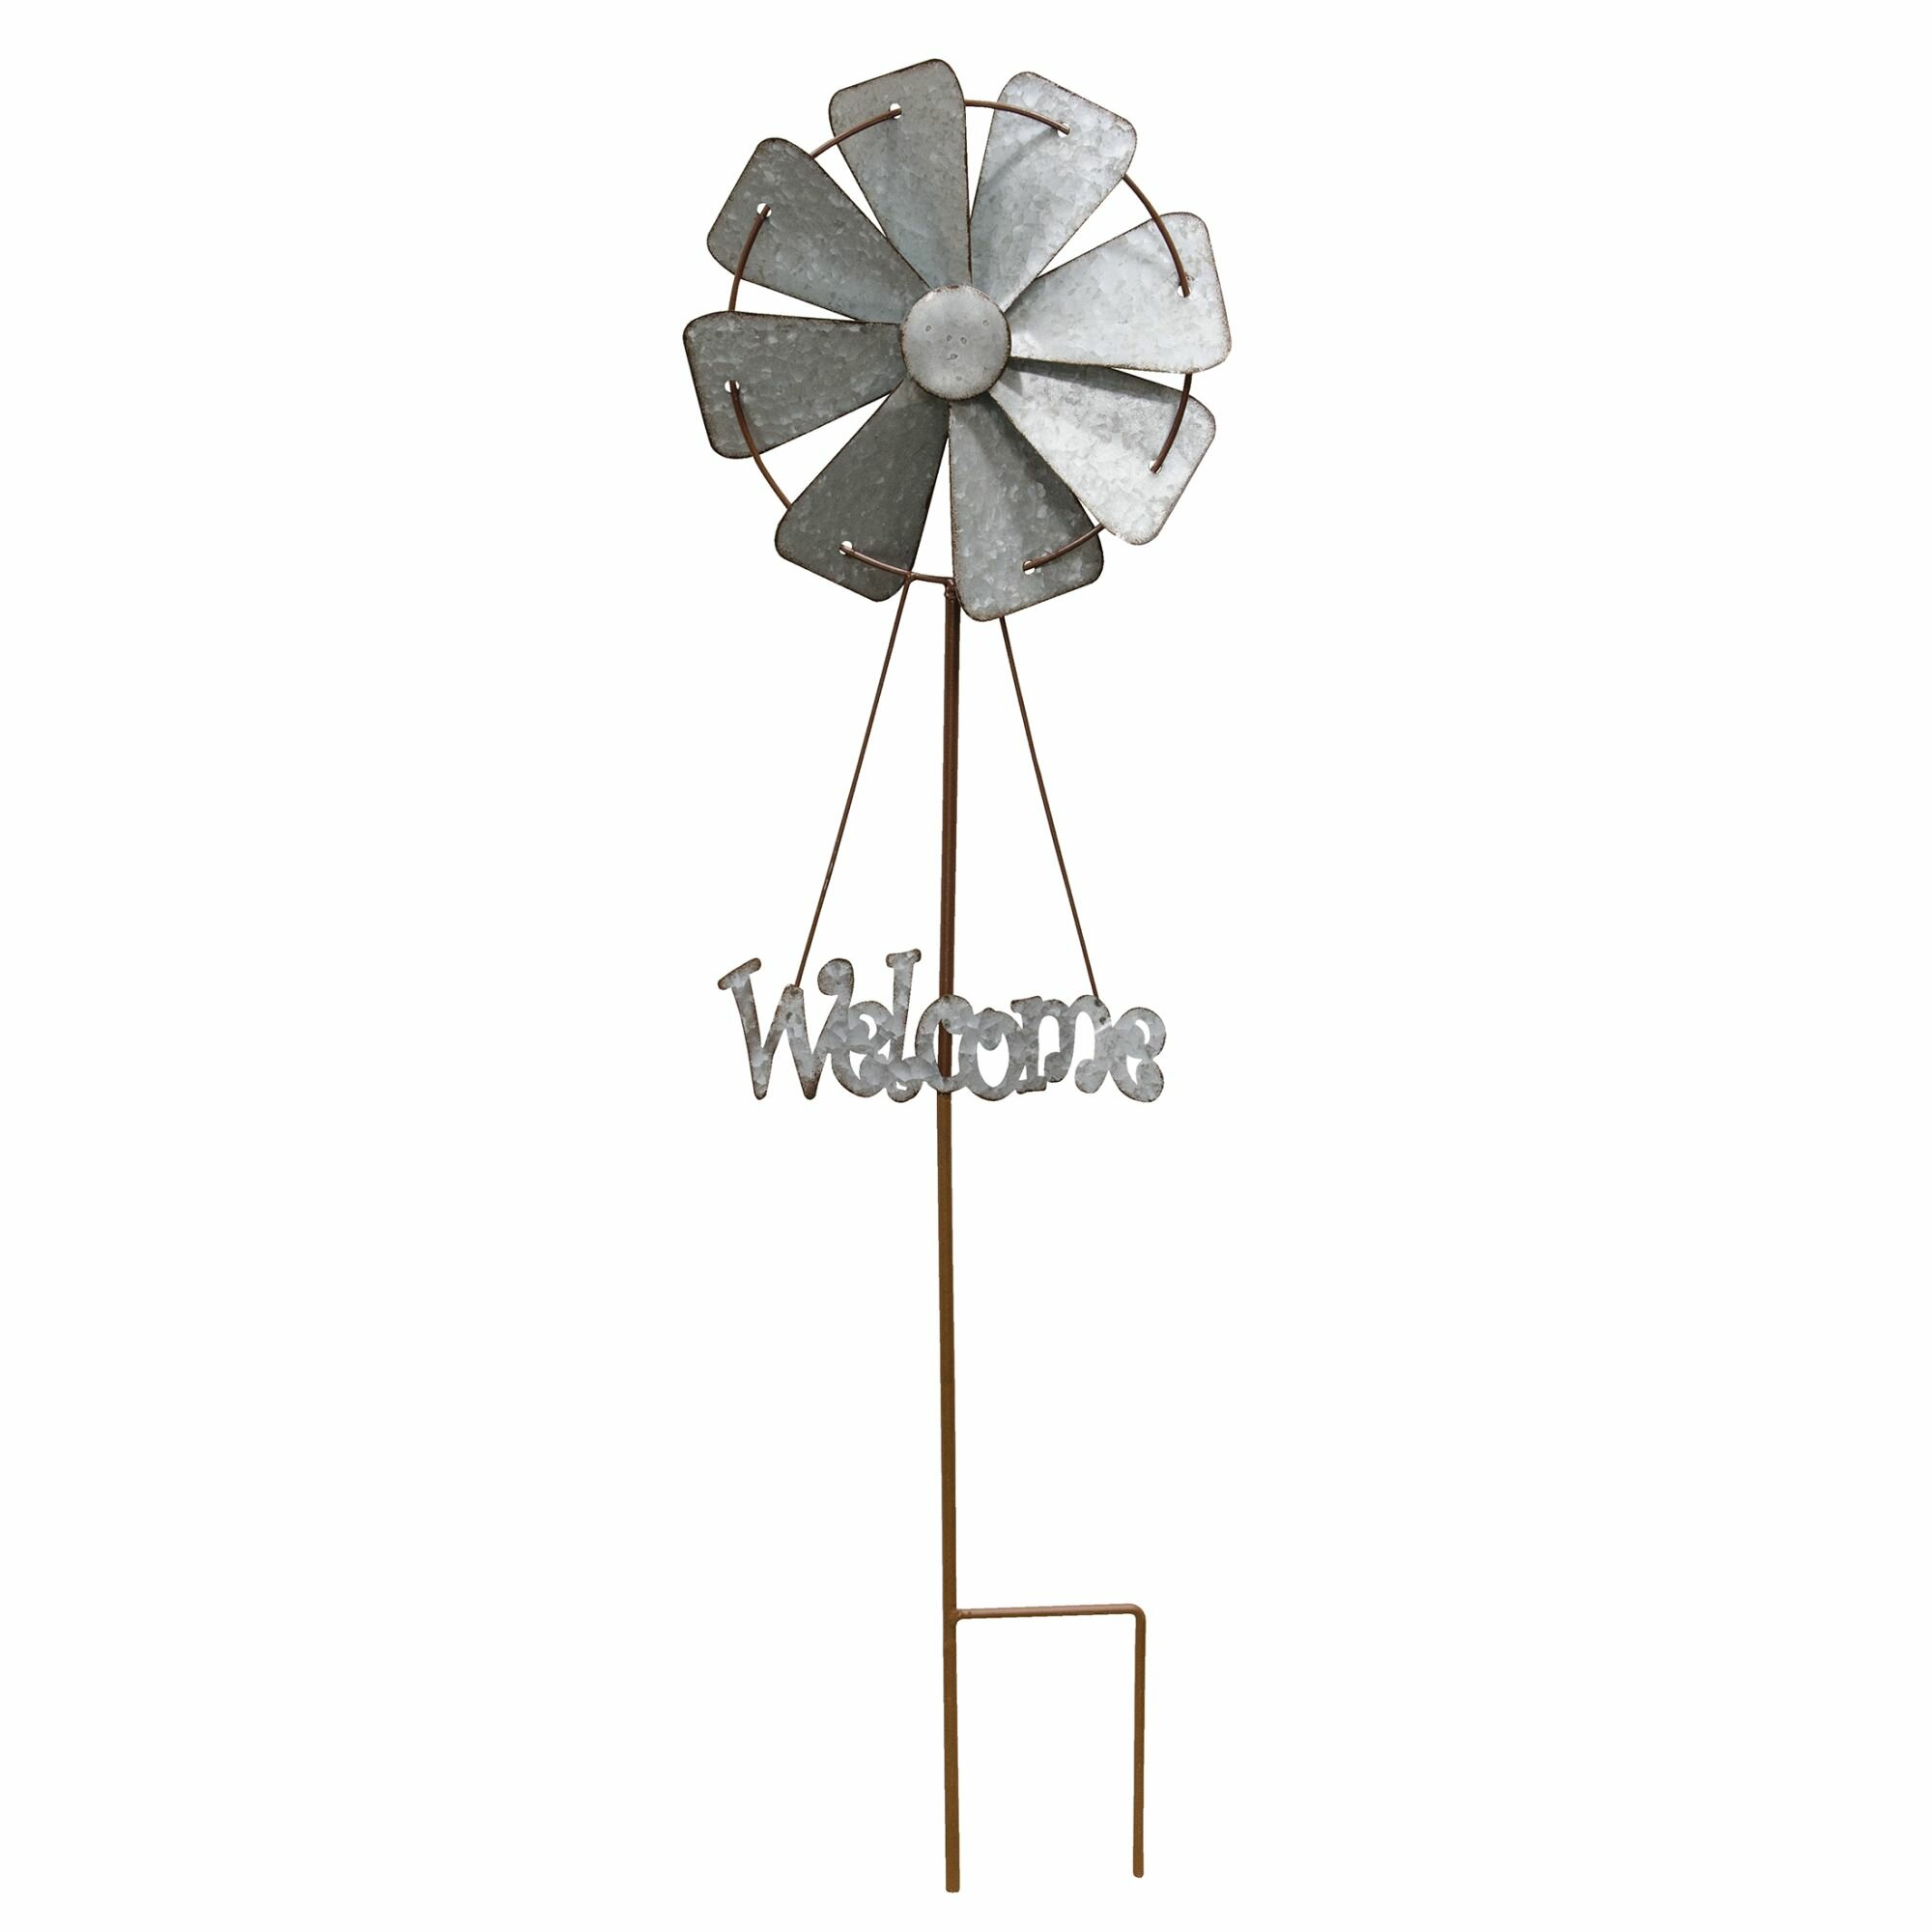 Willard Welcome Windmill Yard Garden Stake